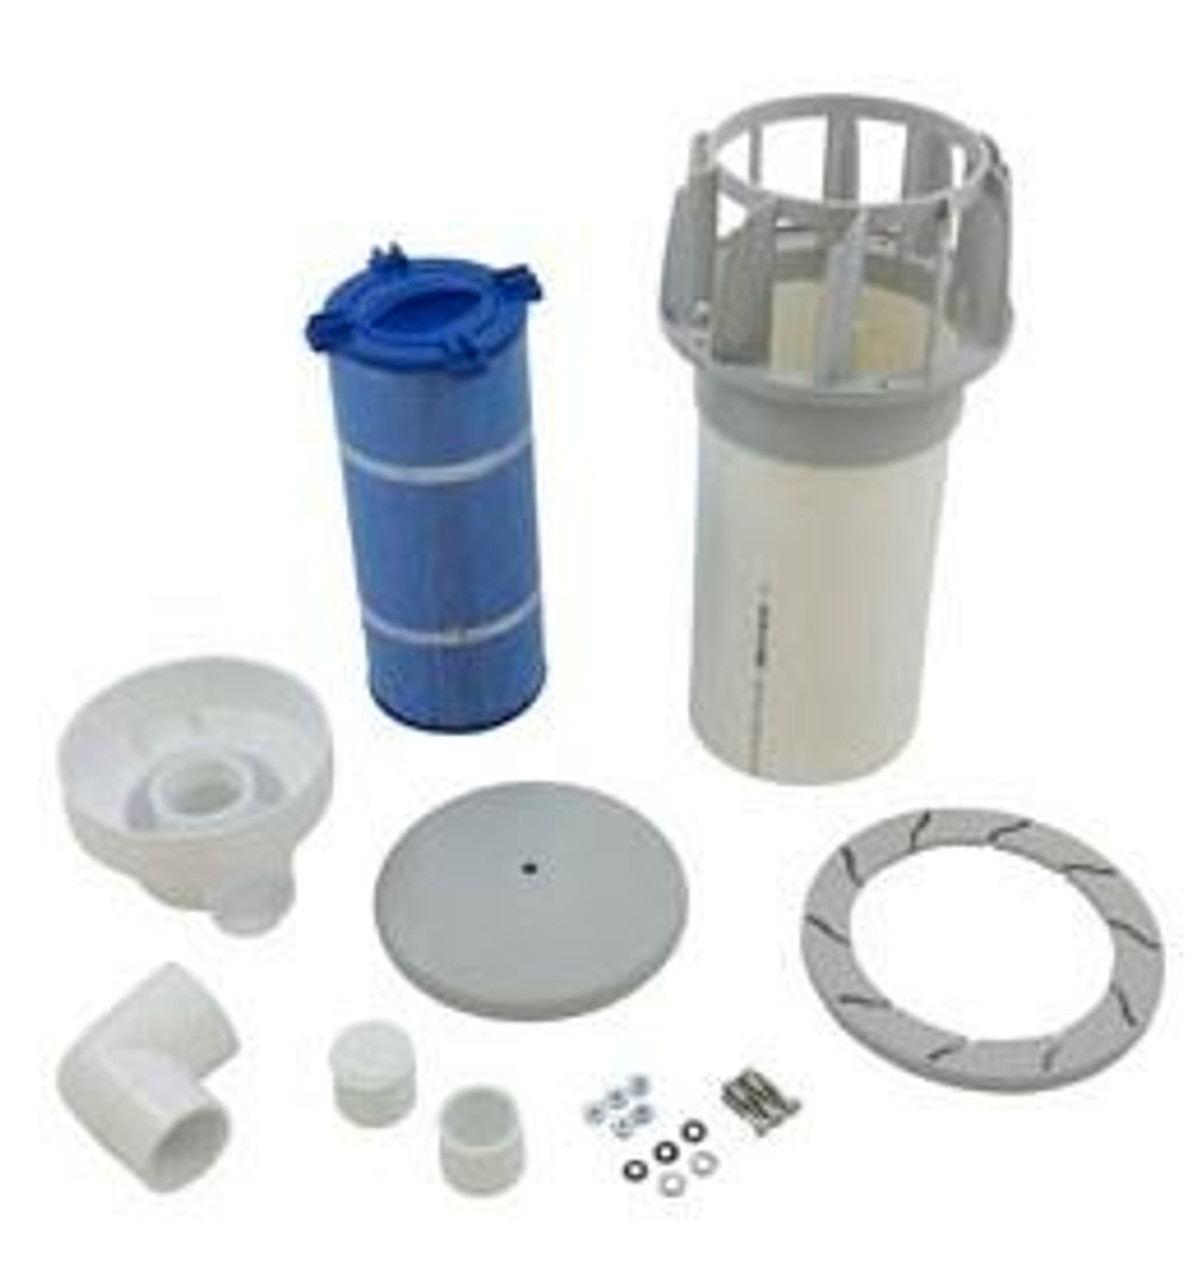 Filter Parts by Spa Brand